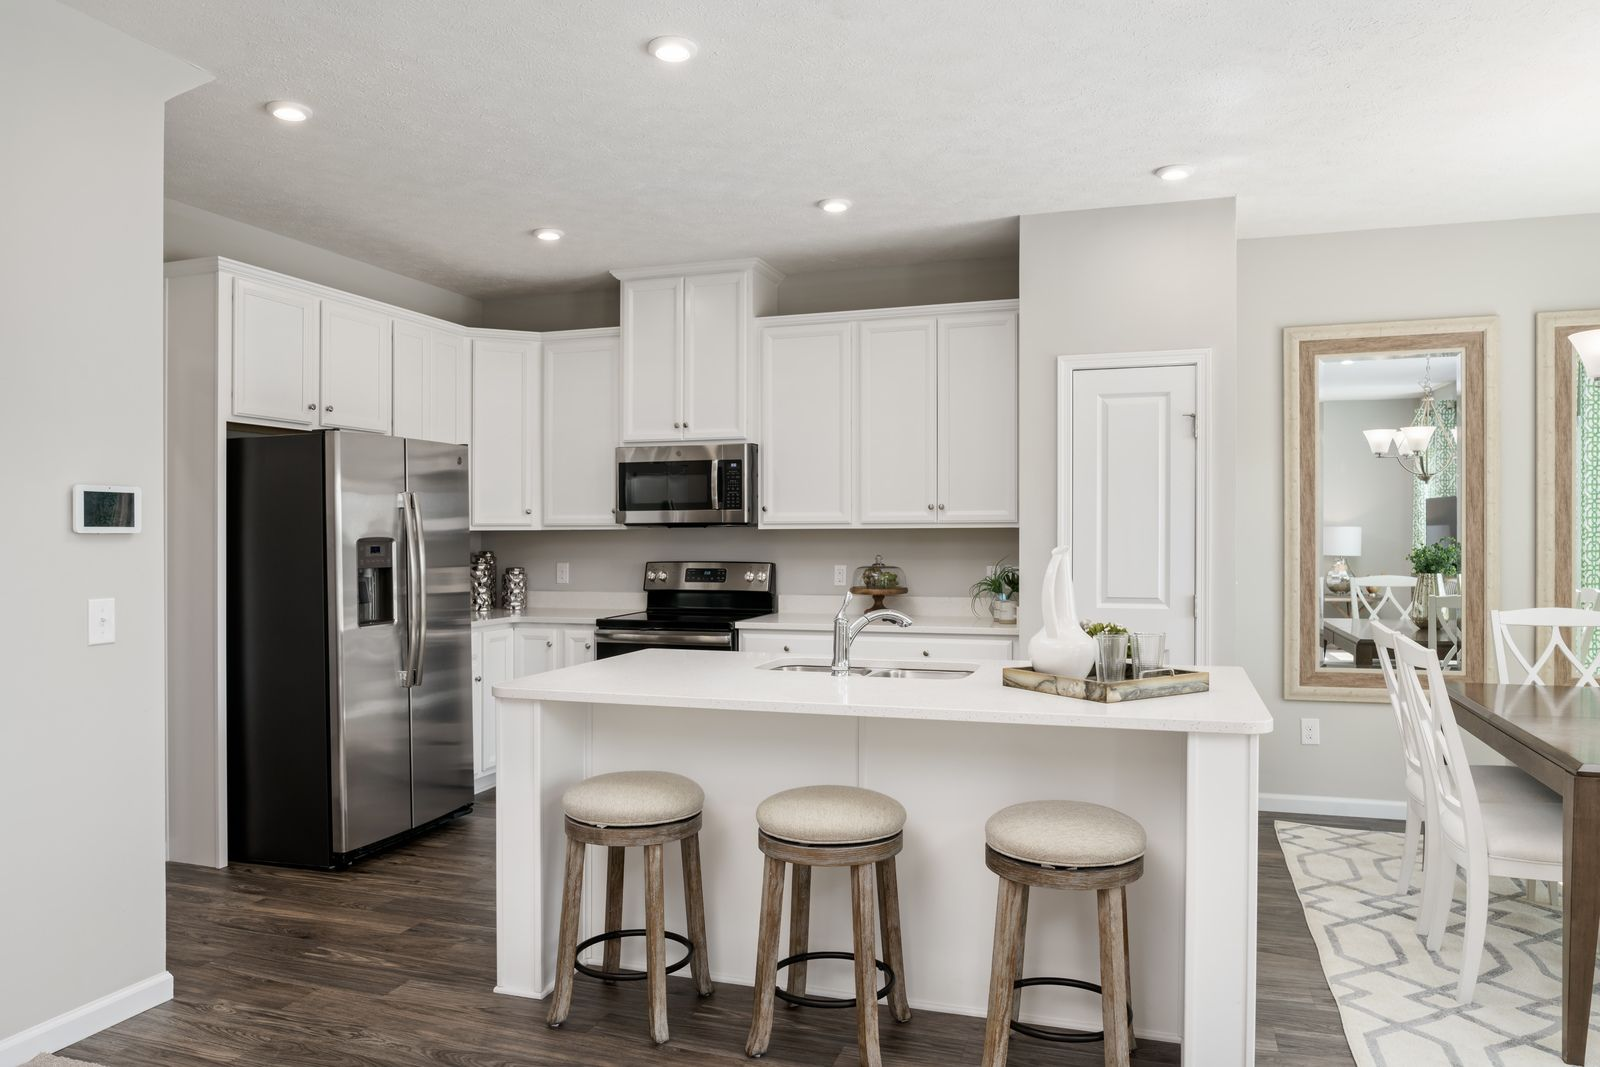 BEST-PRICED NEW 2-STORY HOMES IN MEDINA AT BEACON PARK